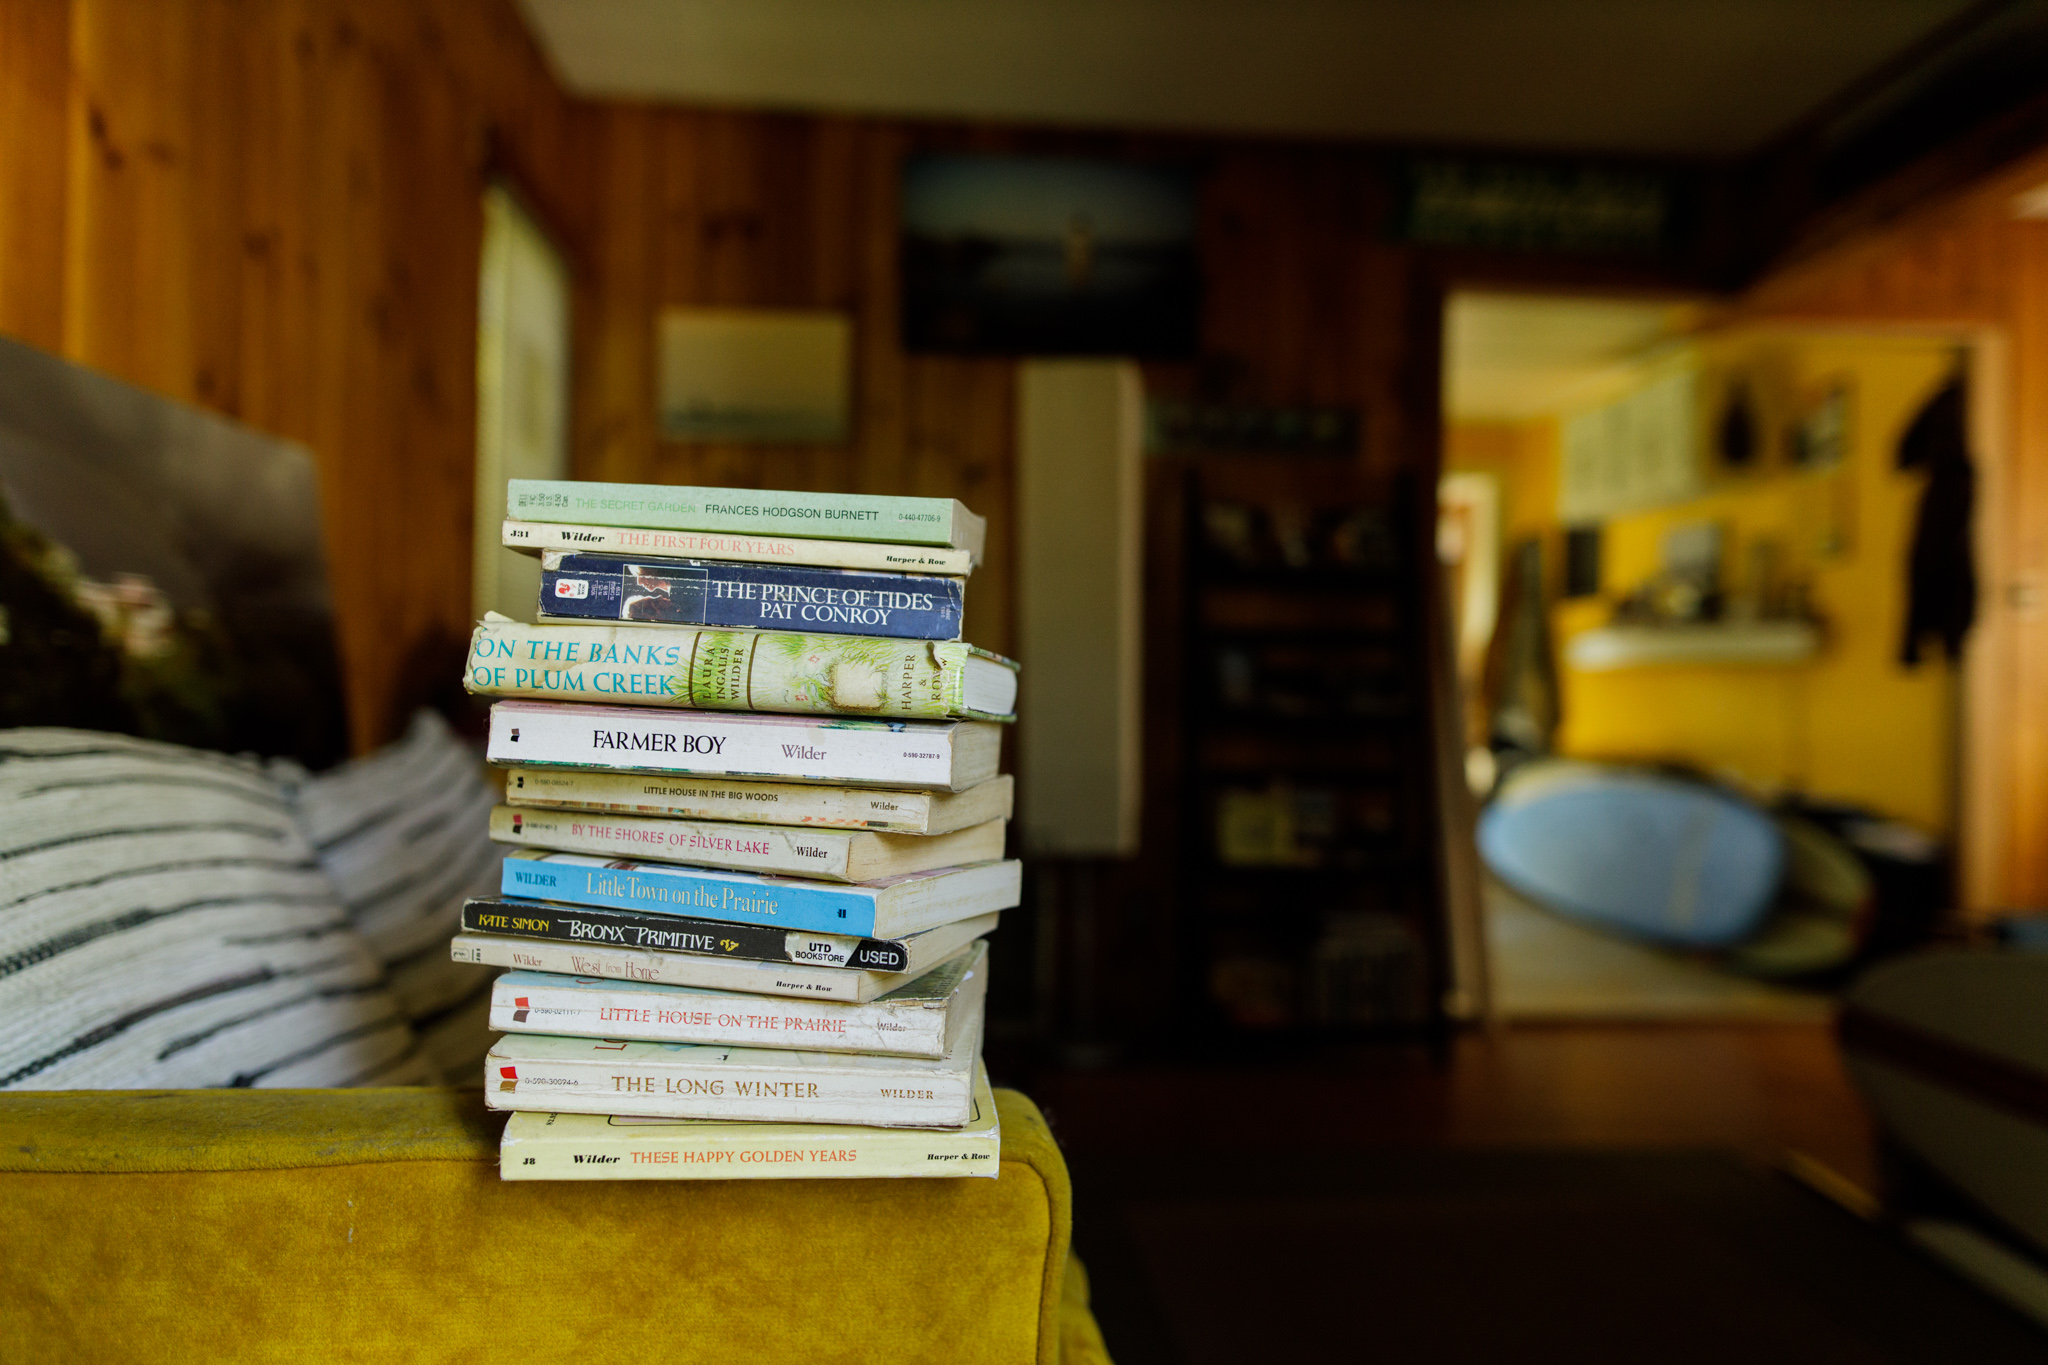 books on the arm of a couch